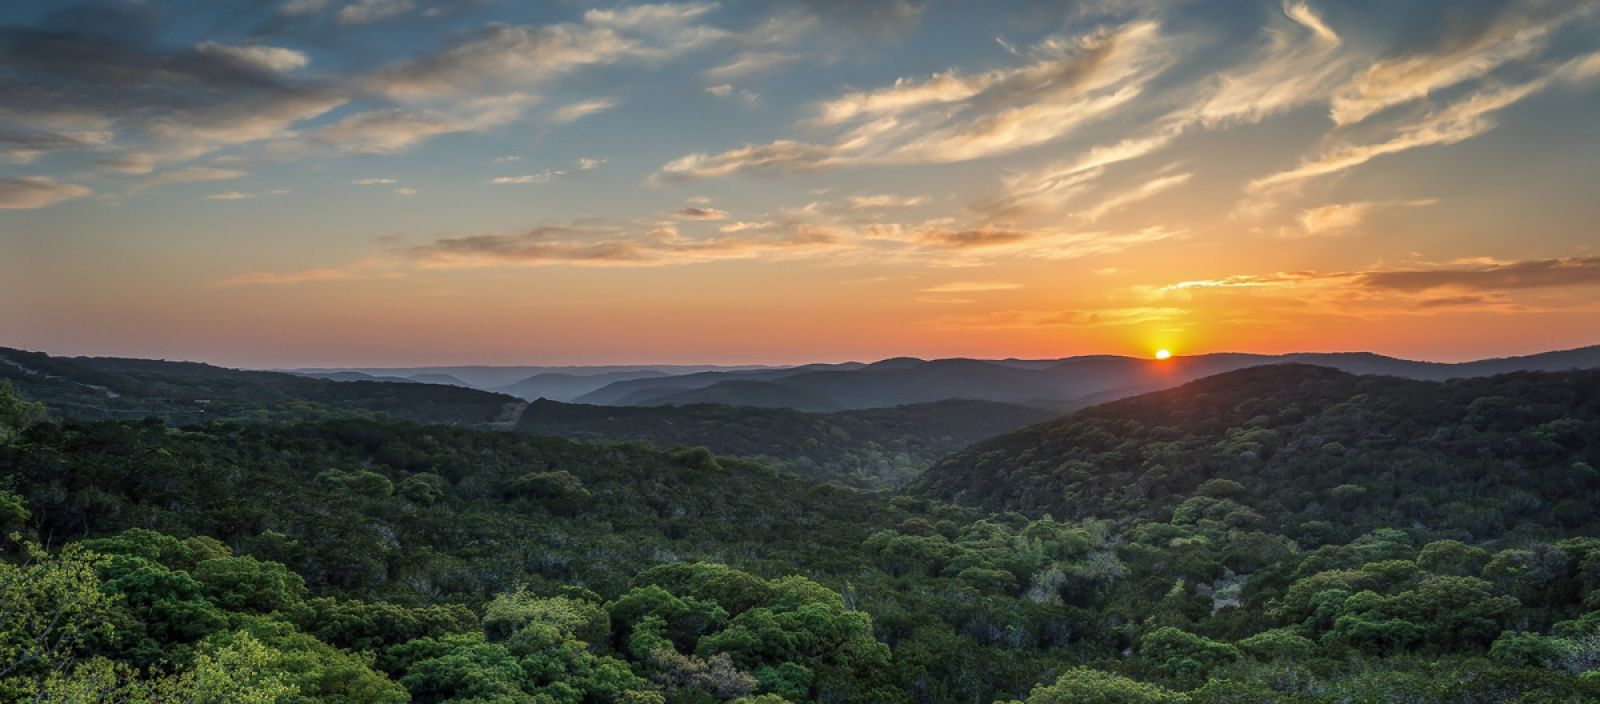 dripping-springs-header-image-2020.jpg